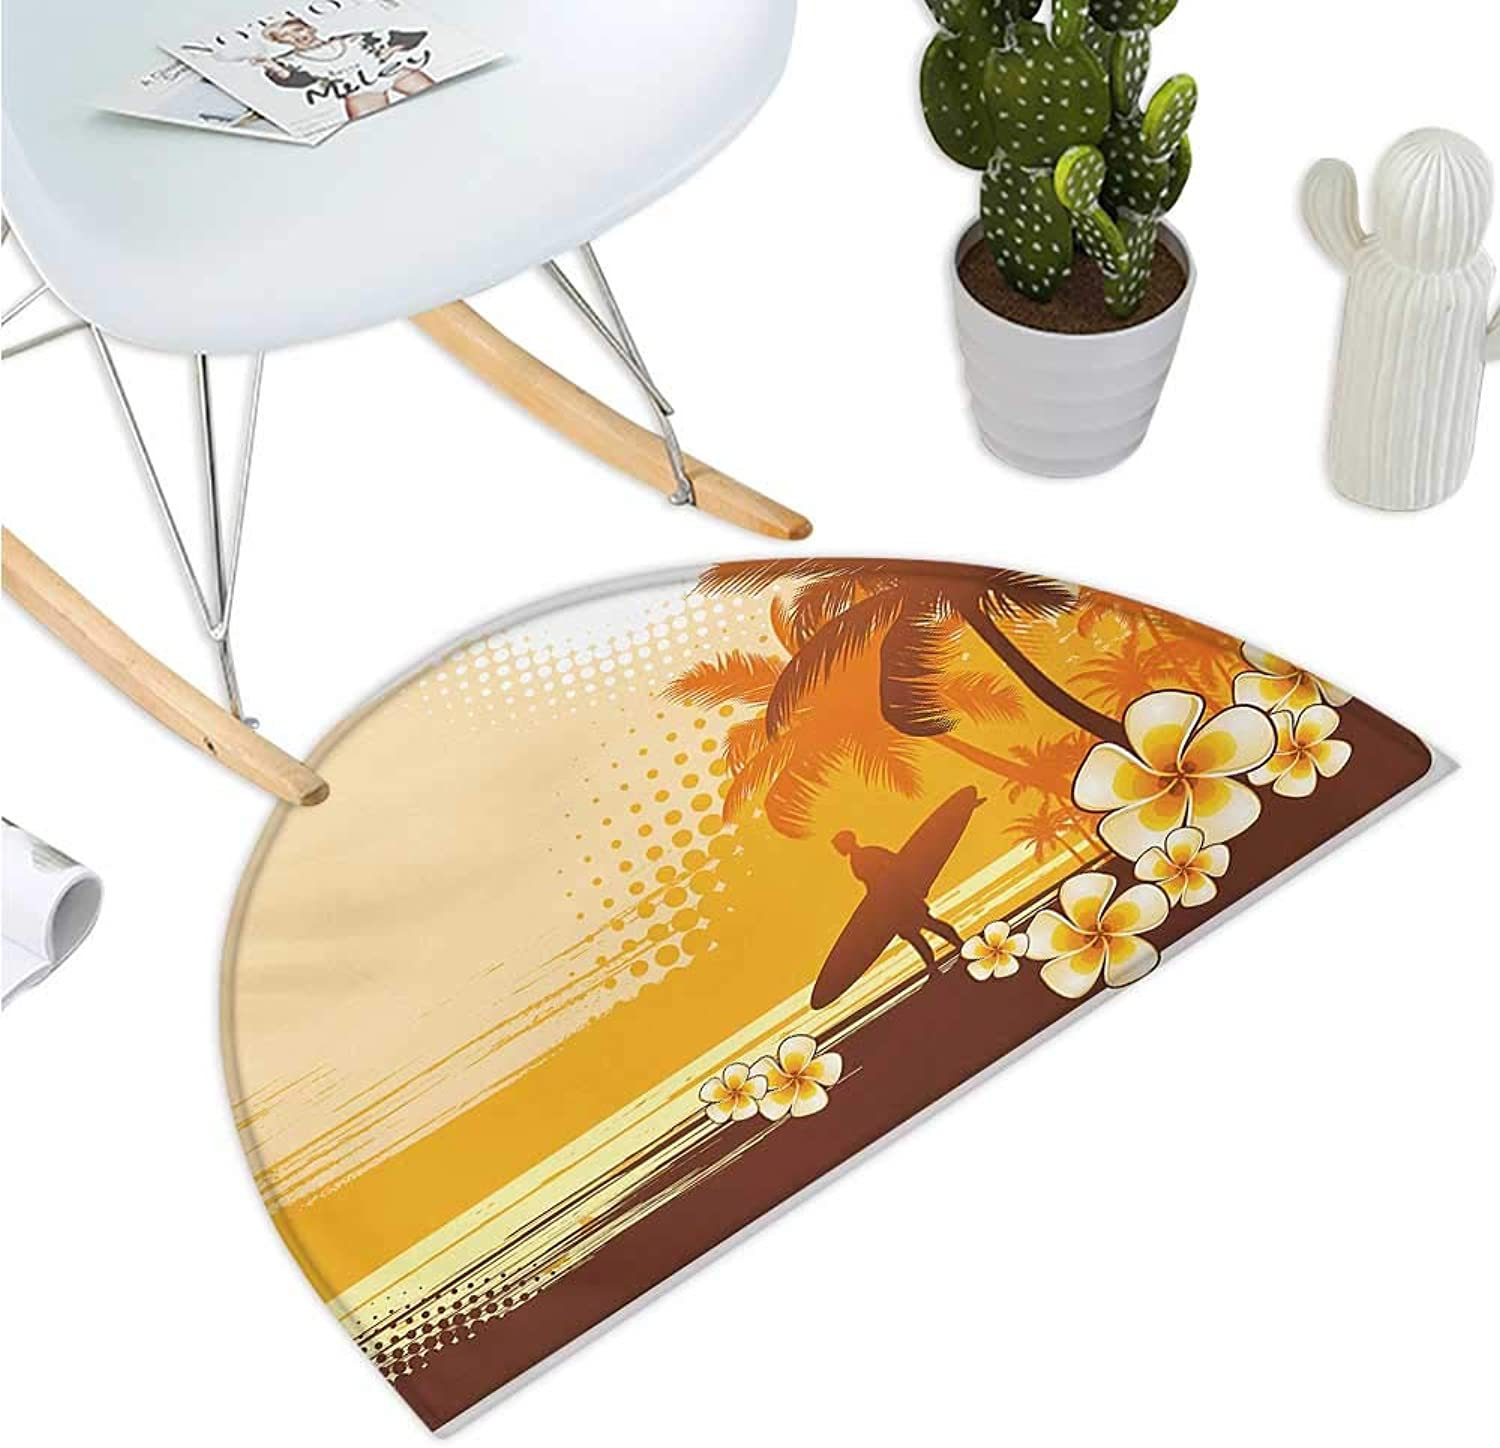 Surf Half Round Door mats Silhouette of Surfer and Tropical Landscape Free Your Mind Artsy Illustration Bathroom Mat H 39.3  xD 59  Yellow Brown orange